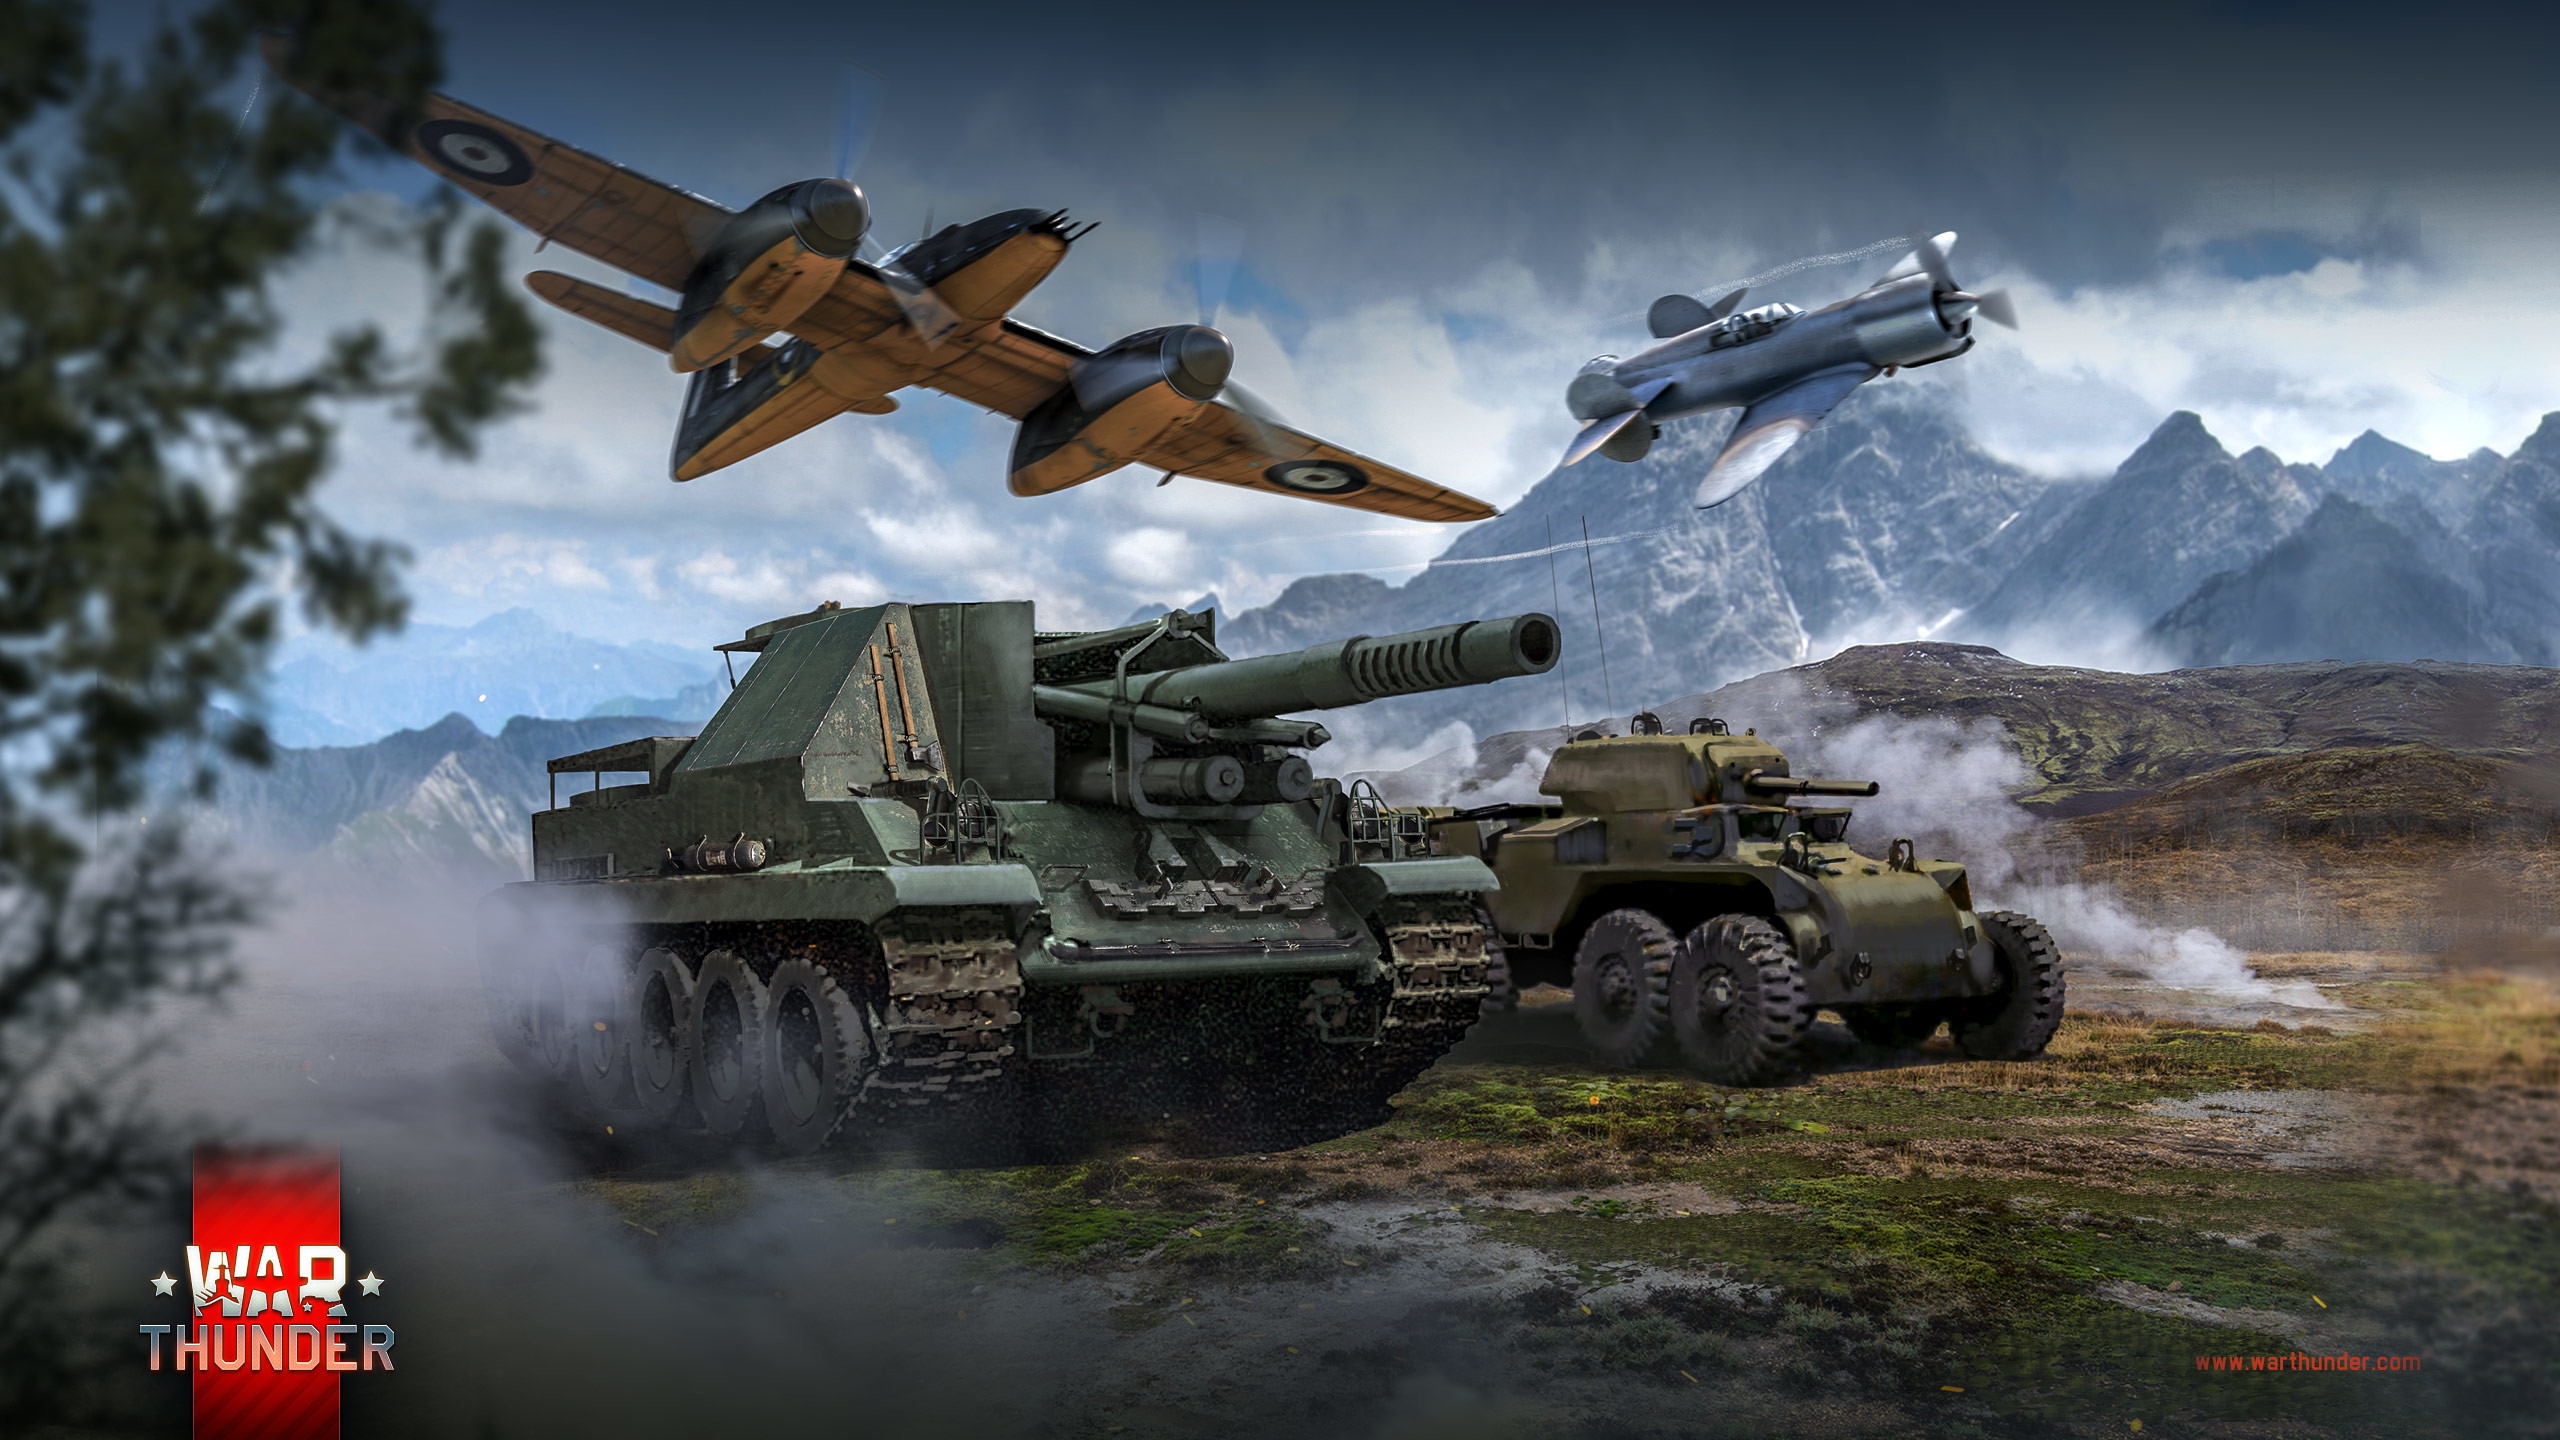 Res: 2560x1440, Chronicles of World War II in War Thunder